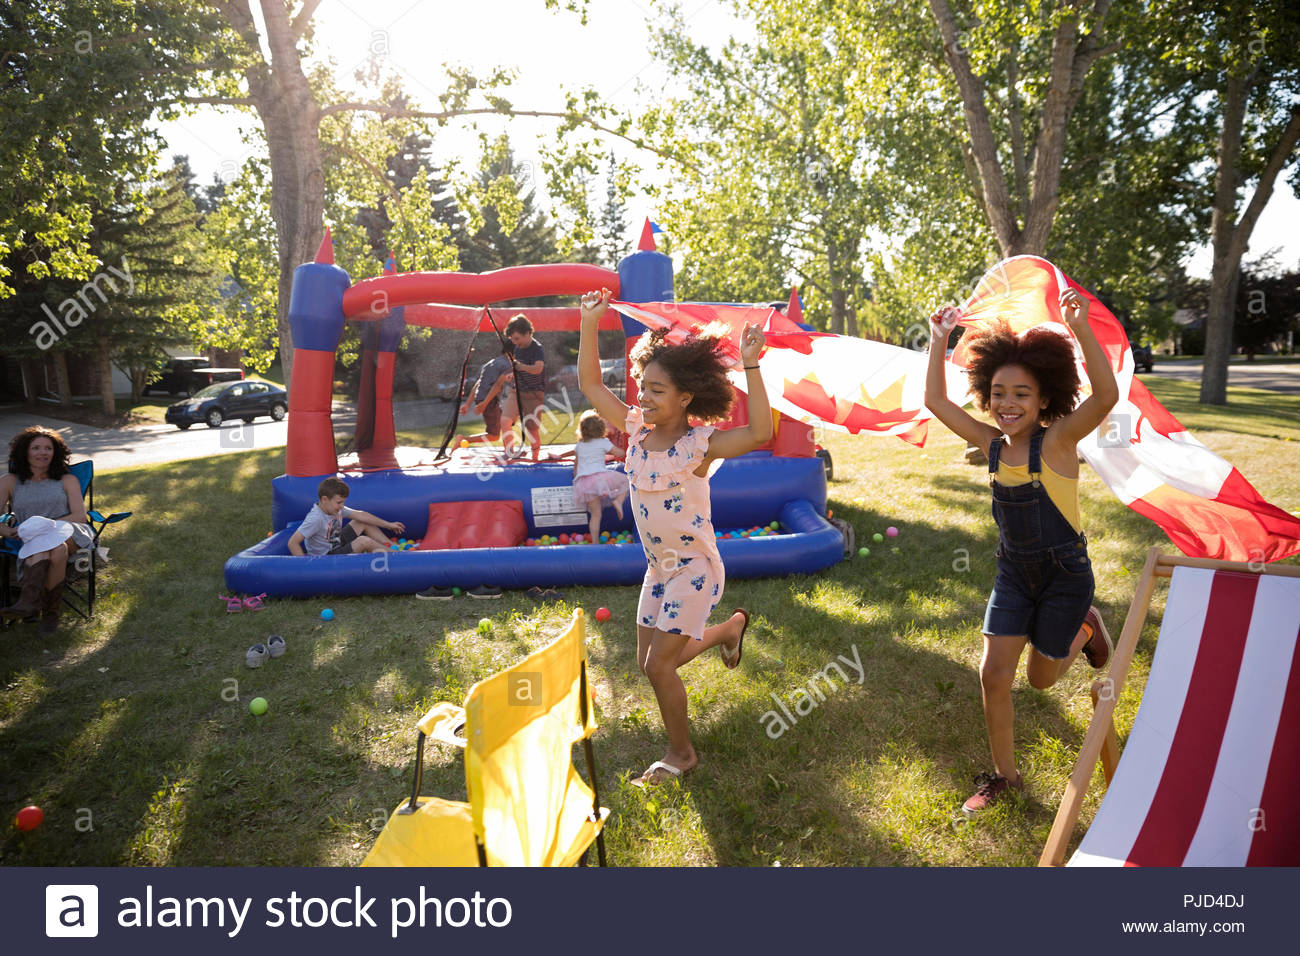 Playful girls running with Canadian flags, celebrating Canada Day in sunny park Stock Photo